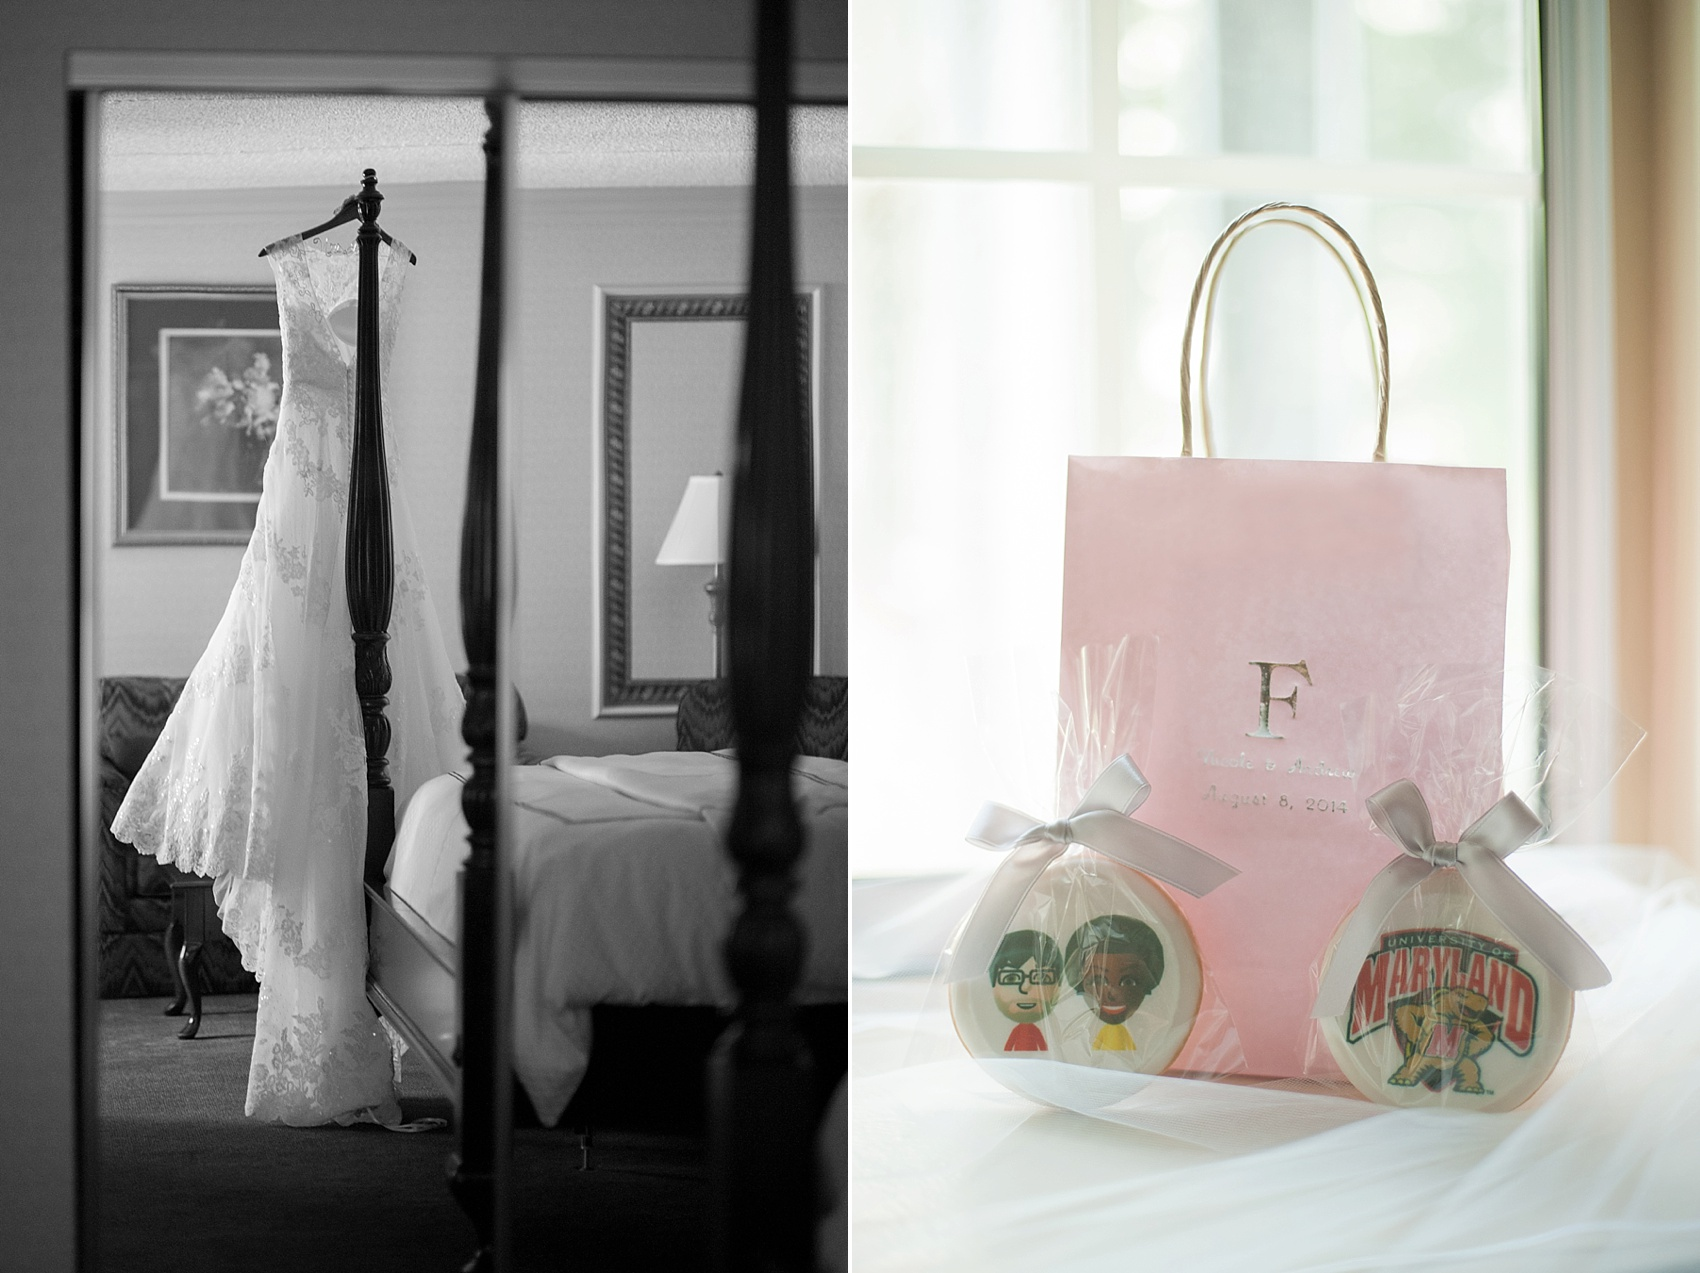 Gift bag and dress photos. Images by Mikkel Paige Photography at The Conservatory at the Madison Hotel, New Jersey.